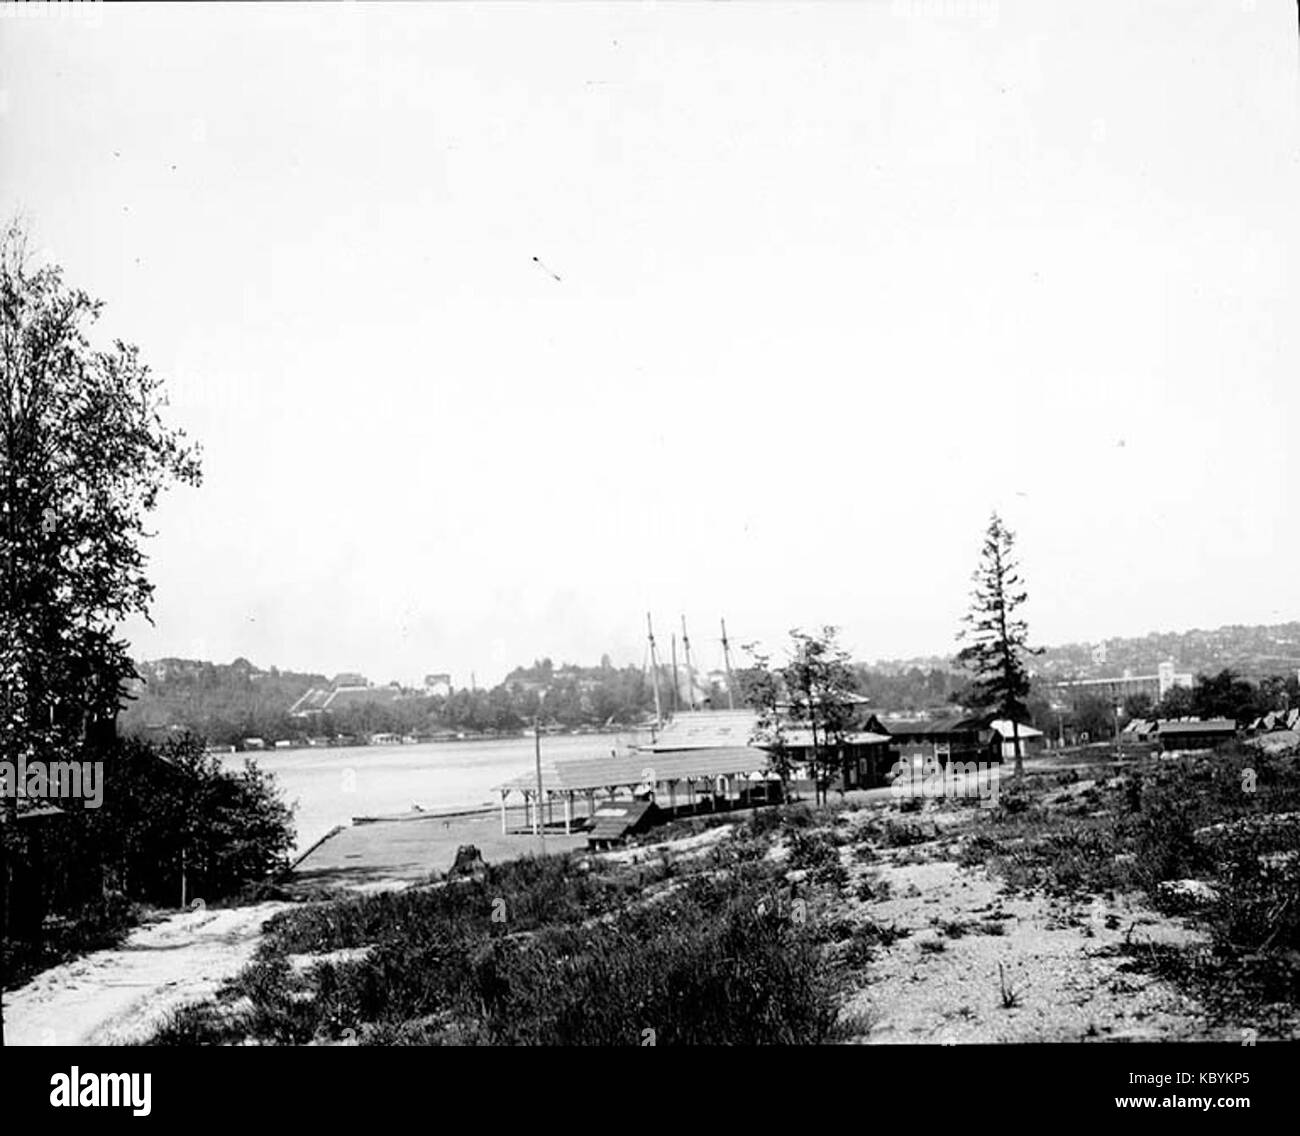 Lake Union frontage of the Univ of Wash campus 1919 (COBB 354) - Stock Image